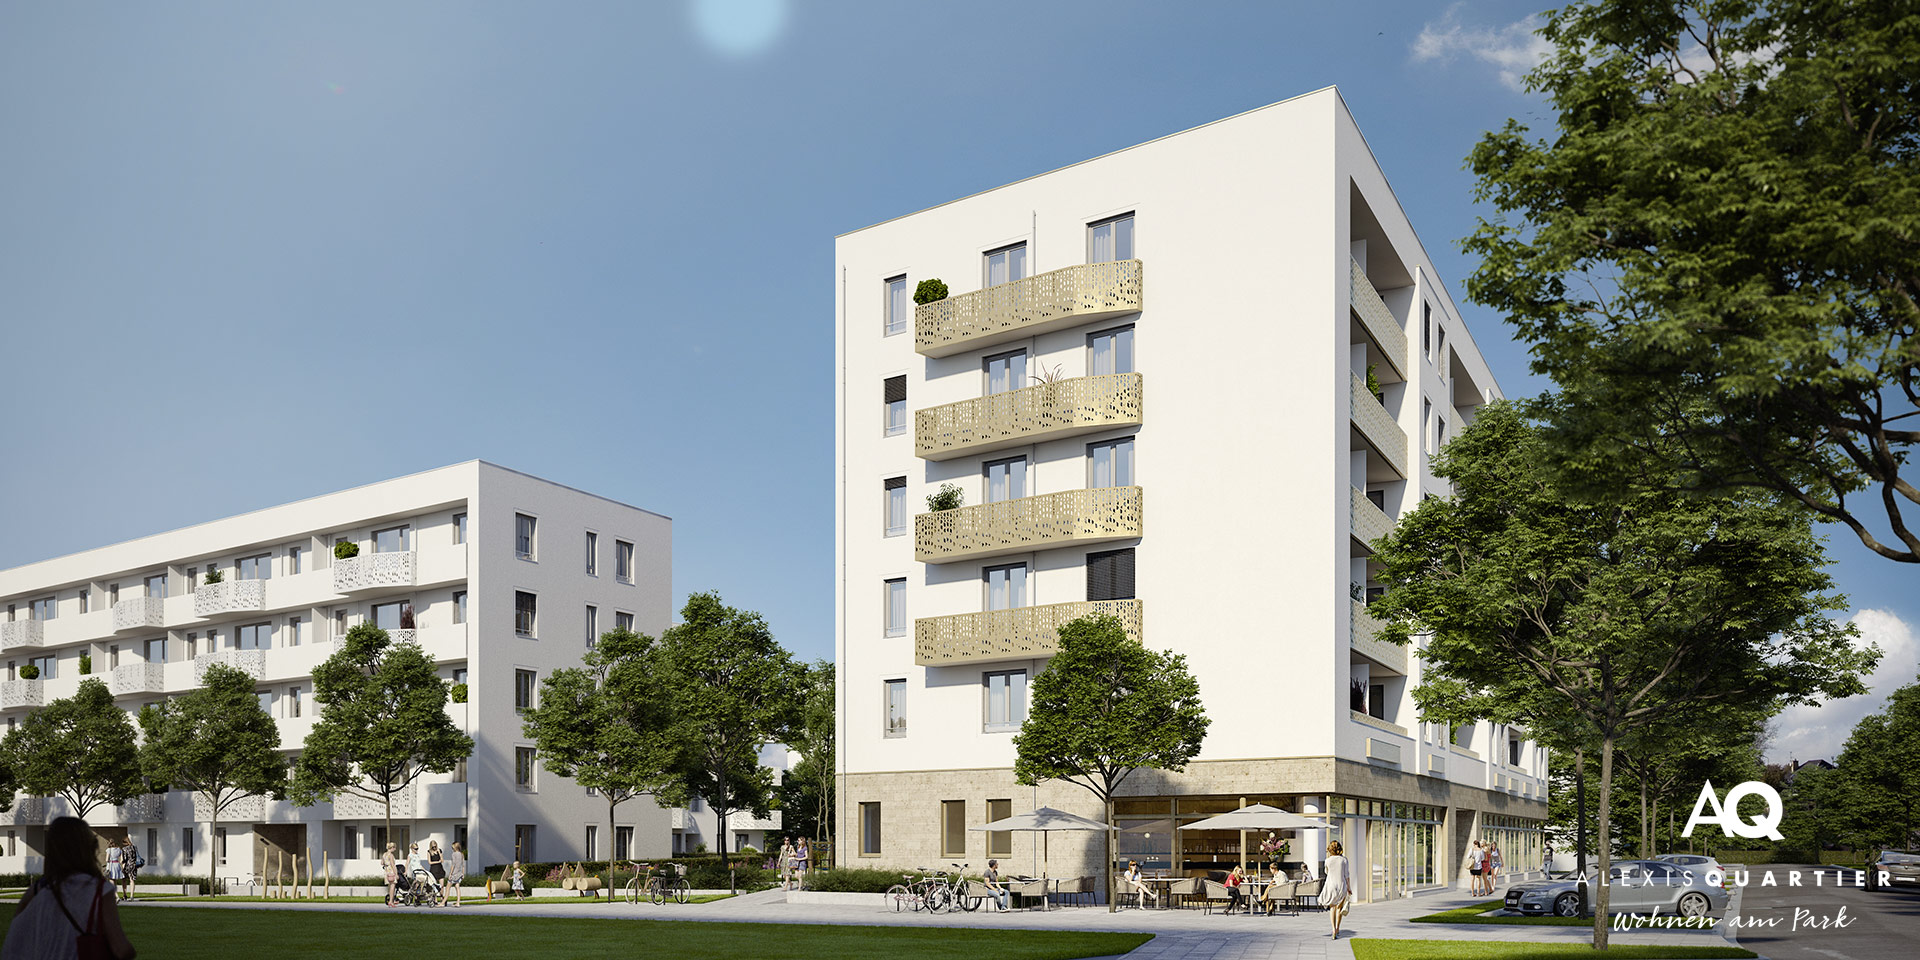 Commercial units munich: Alexisquartier - Wohnen am park